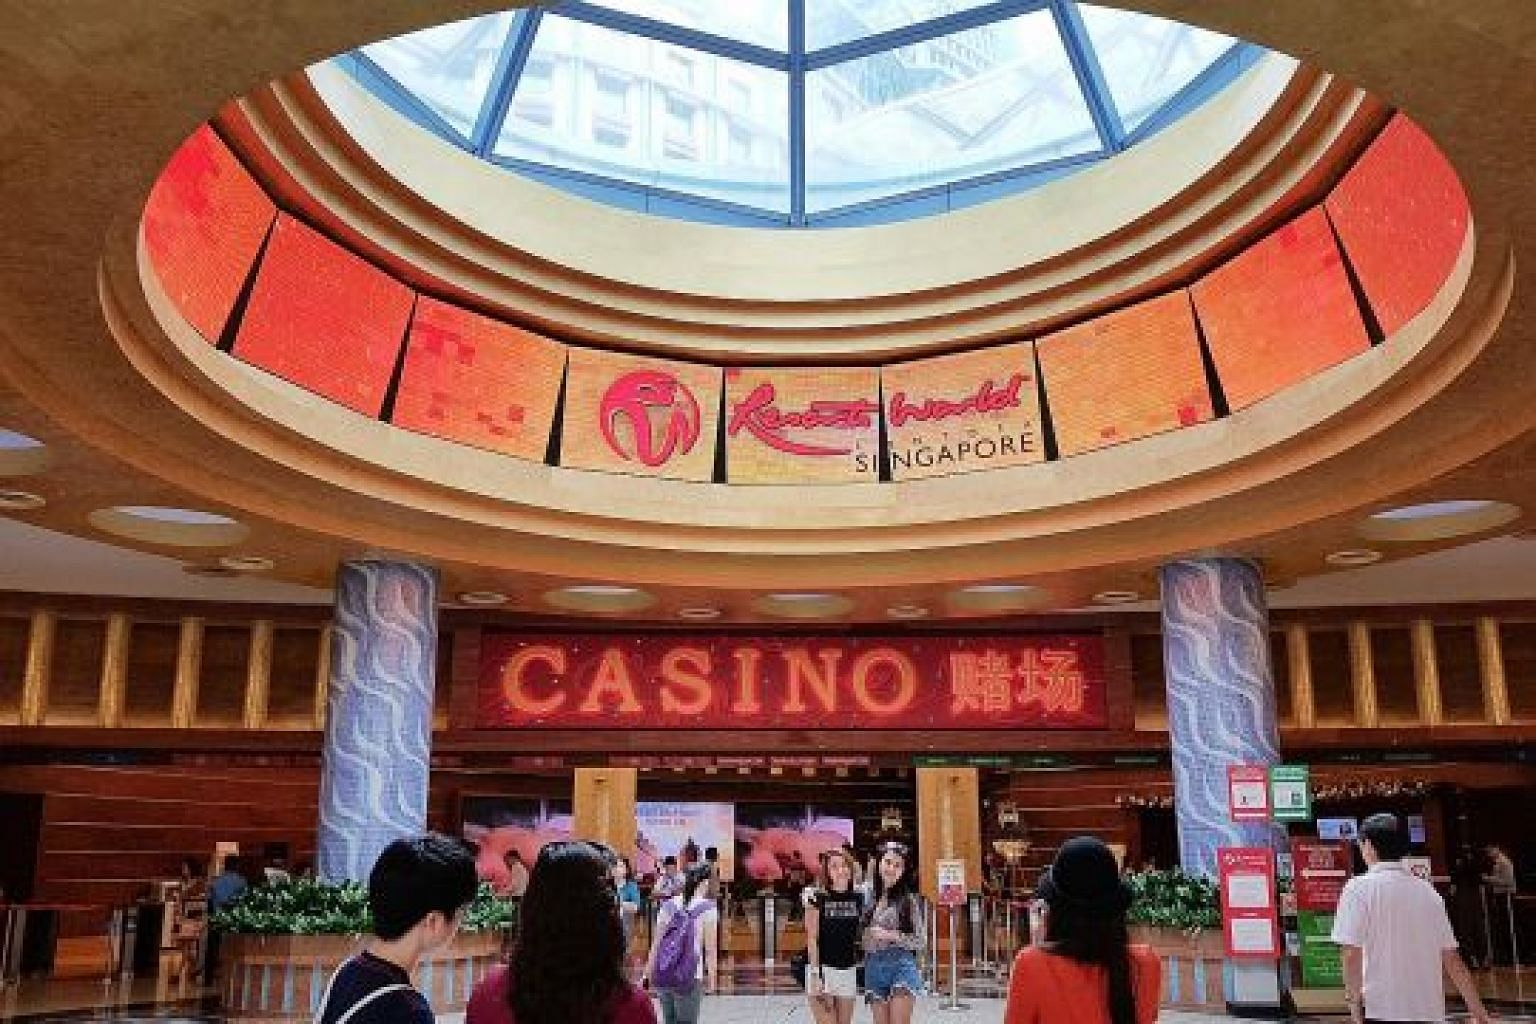 Genting Singapore noted that the Asian gaming and tourism industry showed signs of a rebound last year as a result of good economic growth in its main geographic markets.